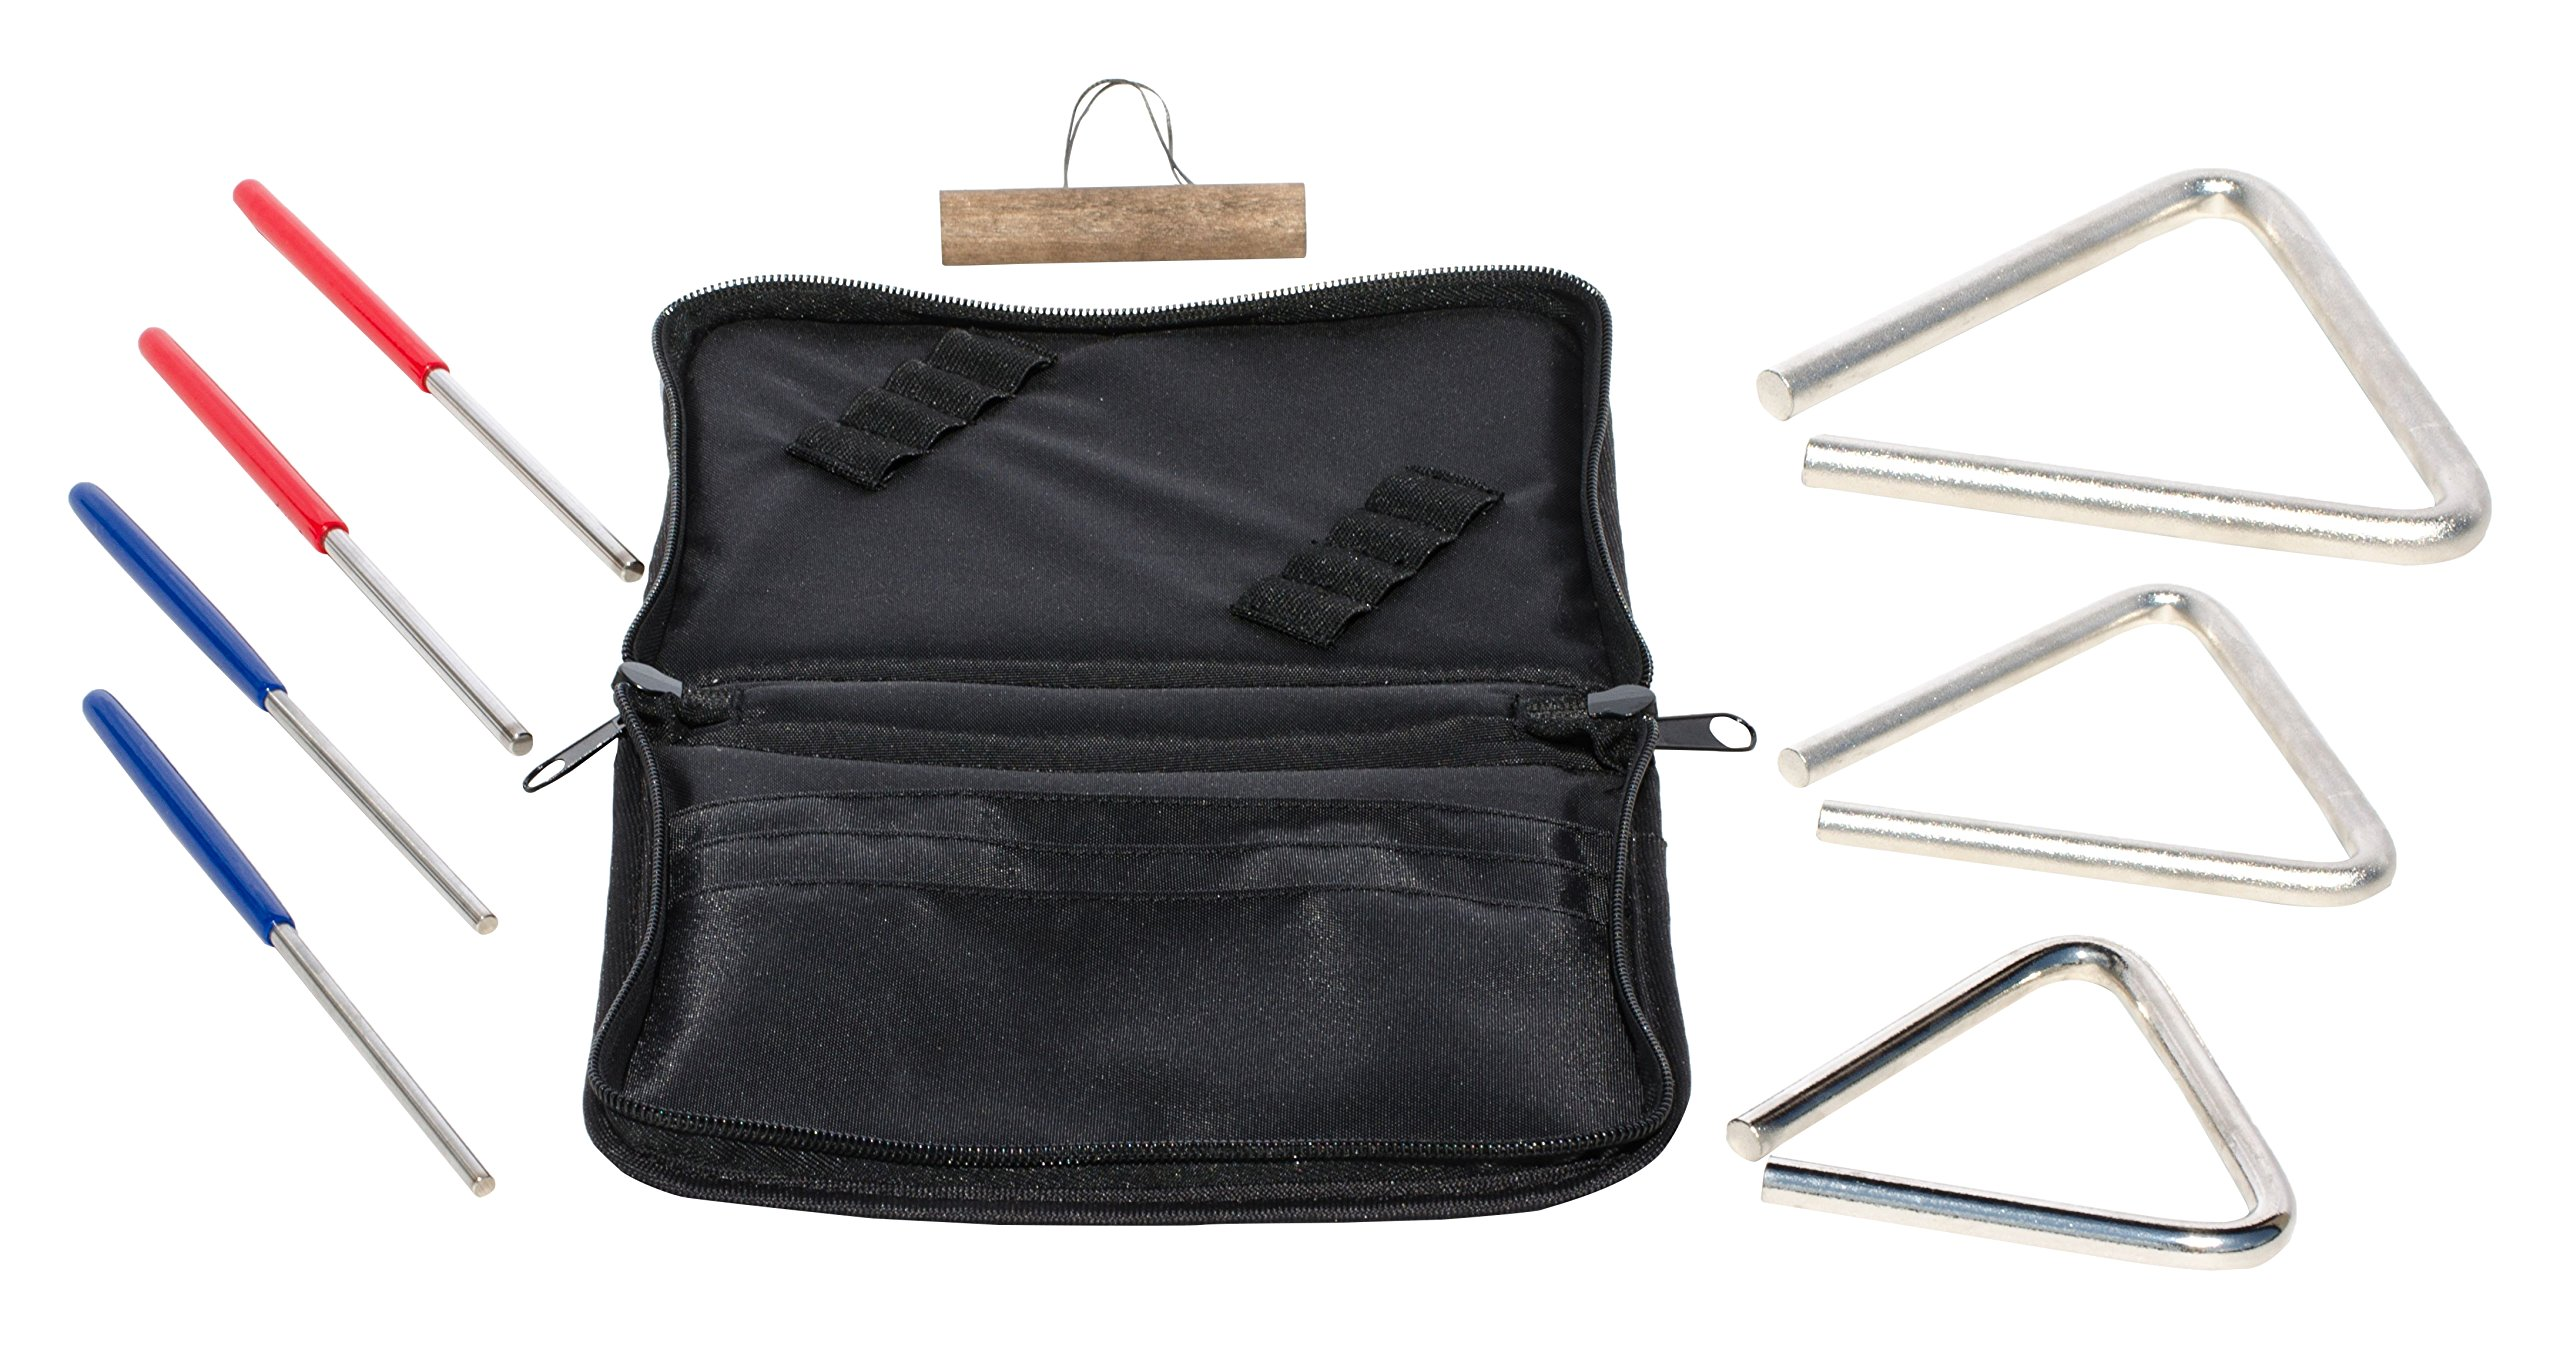 TreeWorks Chimes TRE57BP Made in USA Set of Three Triangles and Beaters with Carrying Case for Storage and Travel